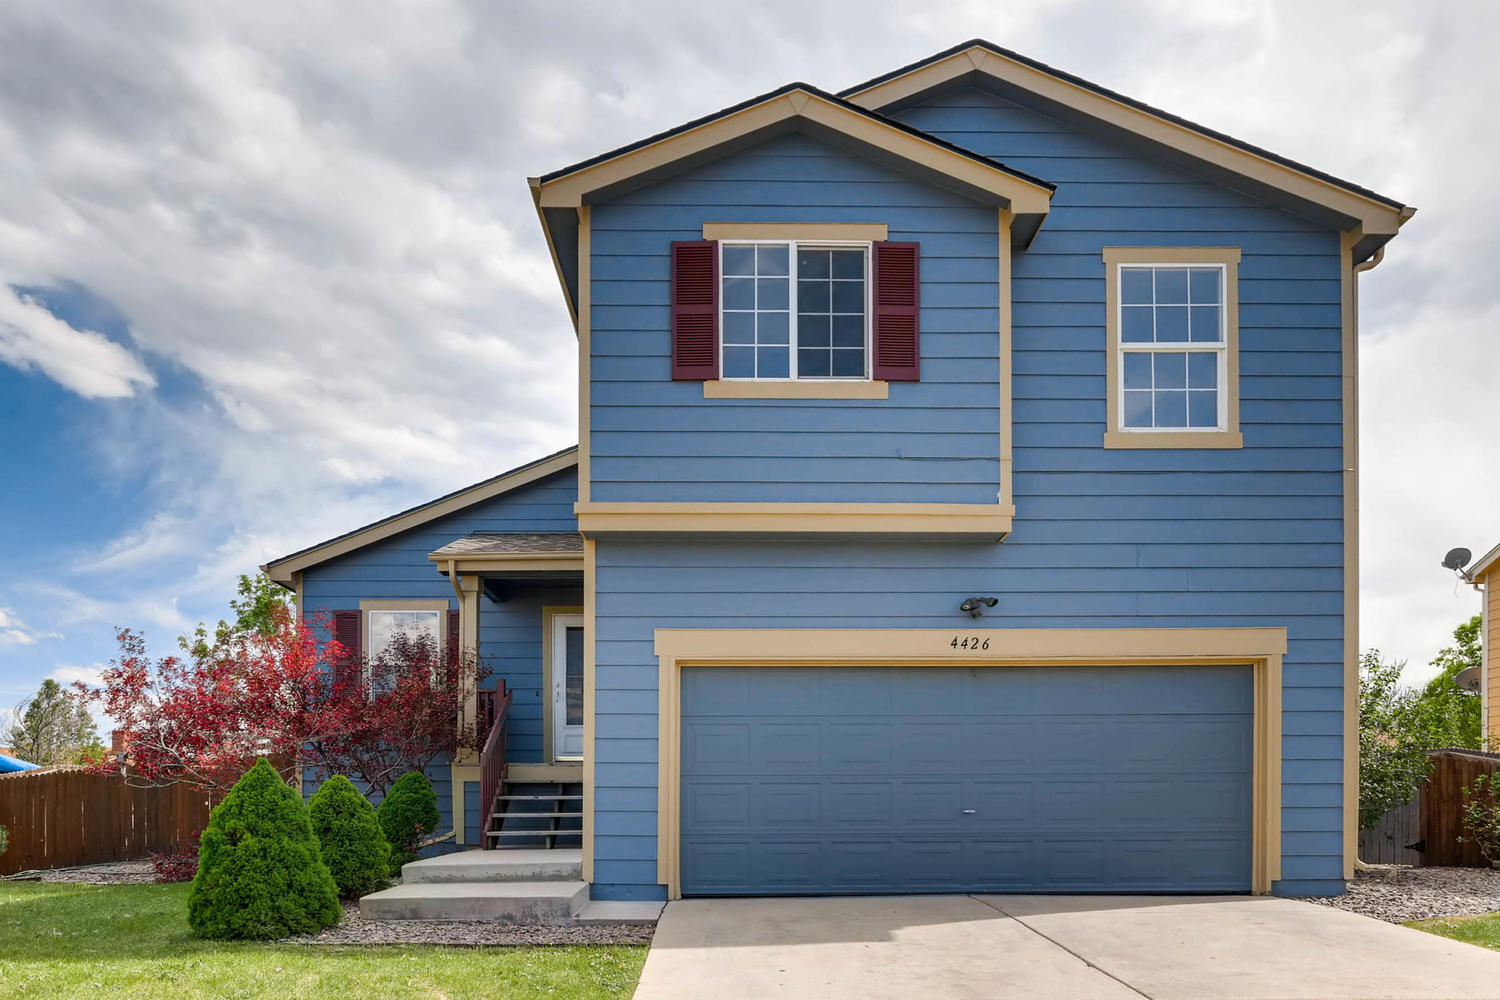 Sold! Spacious & updated tri-level home